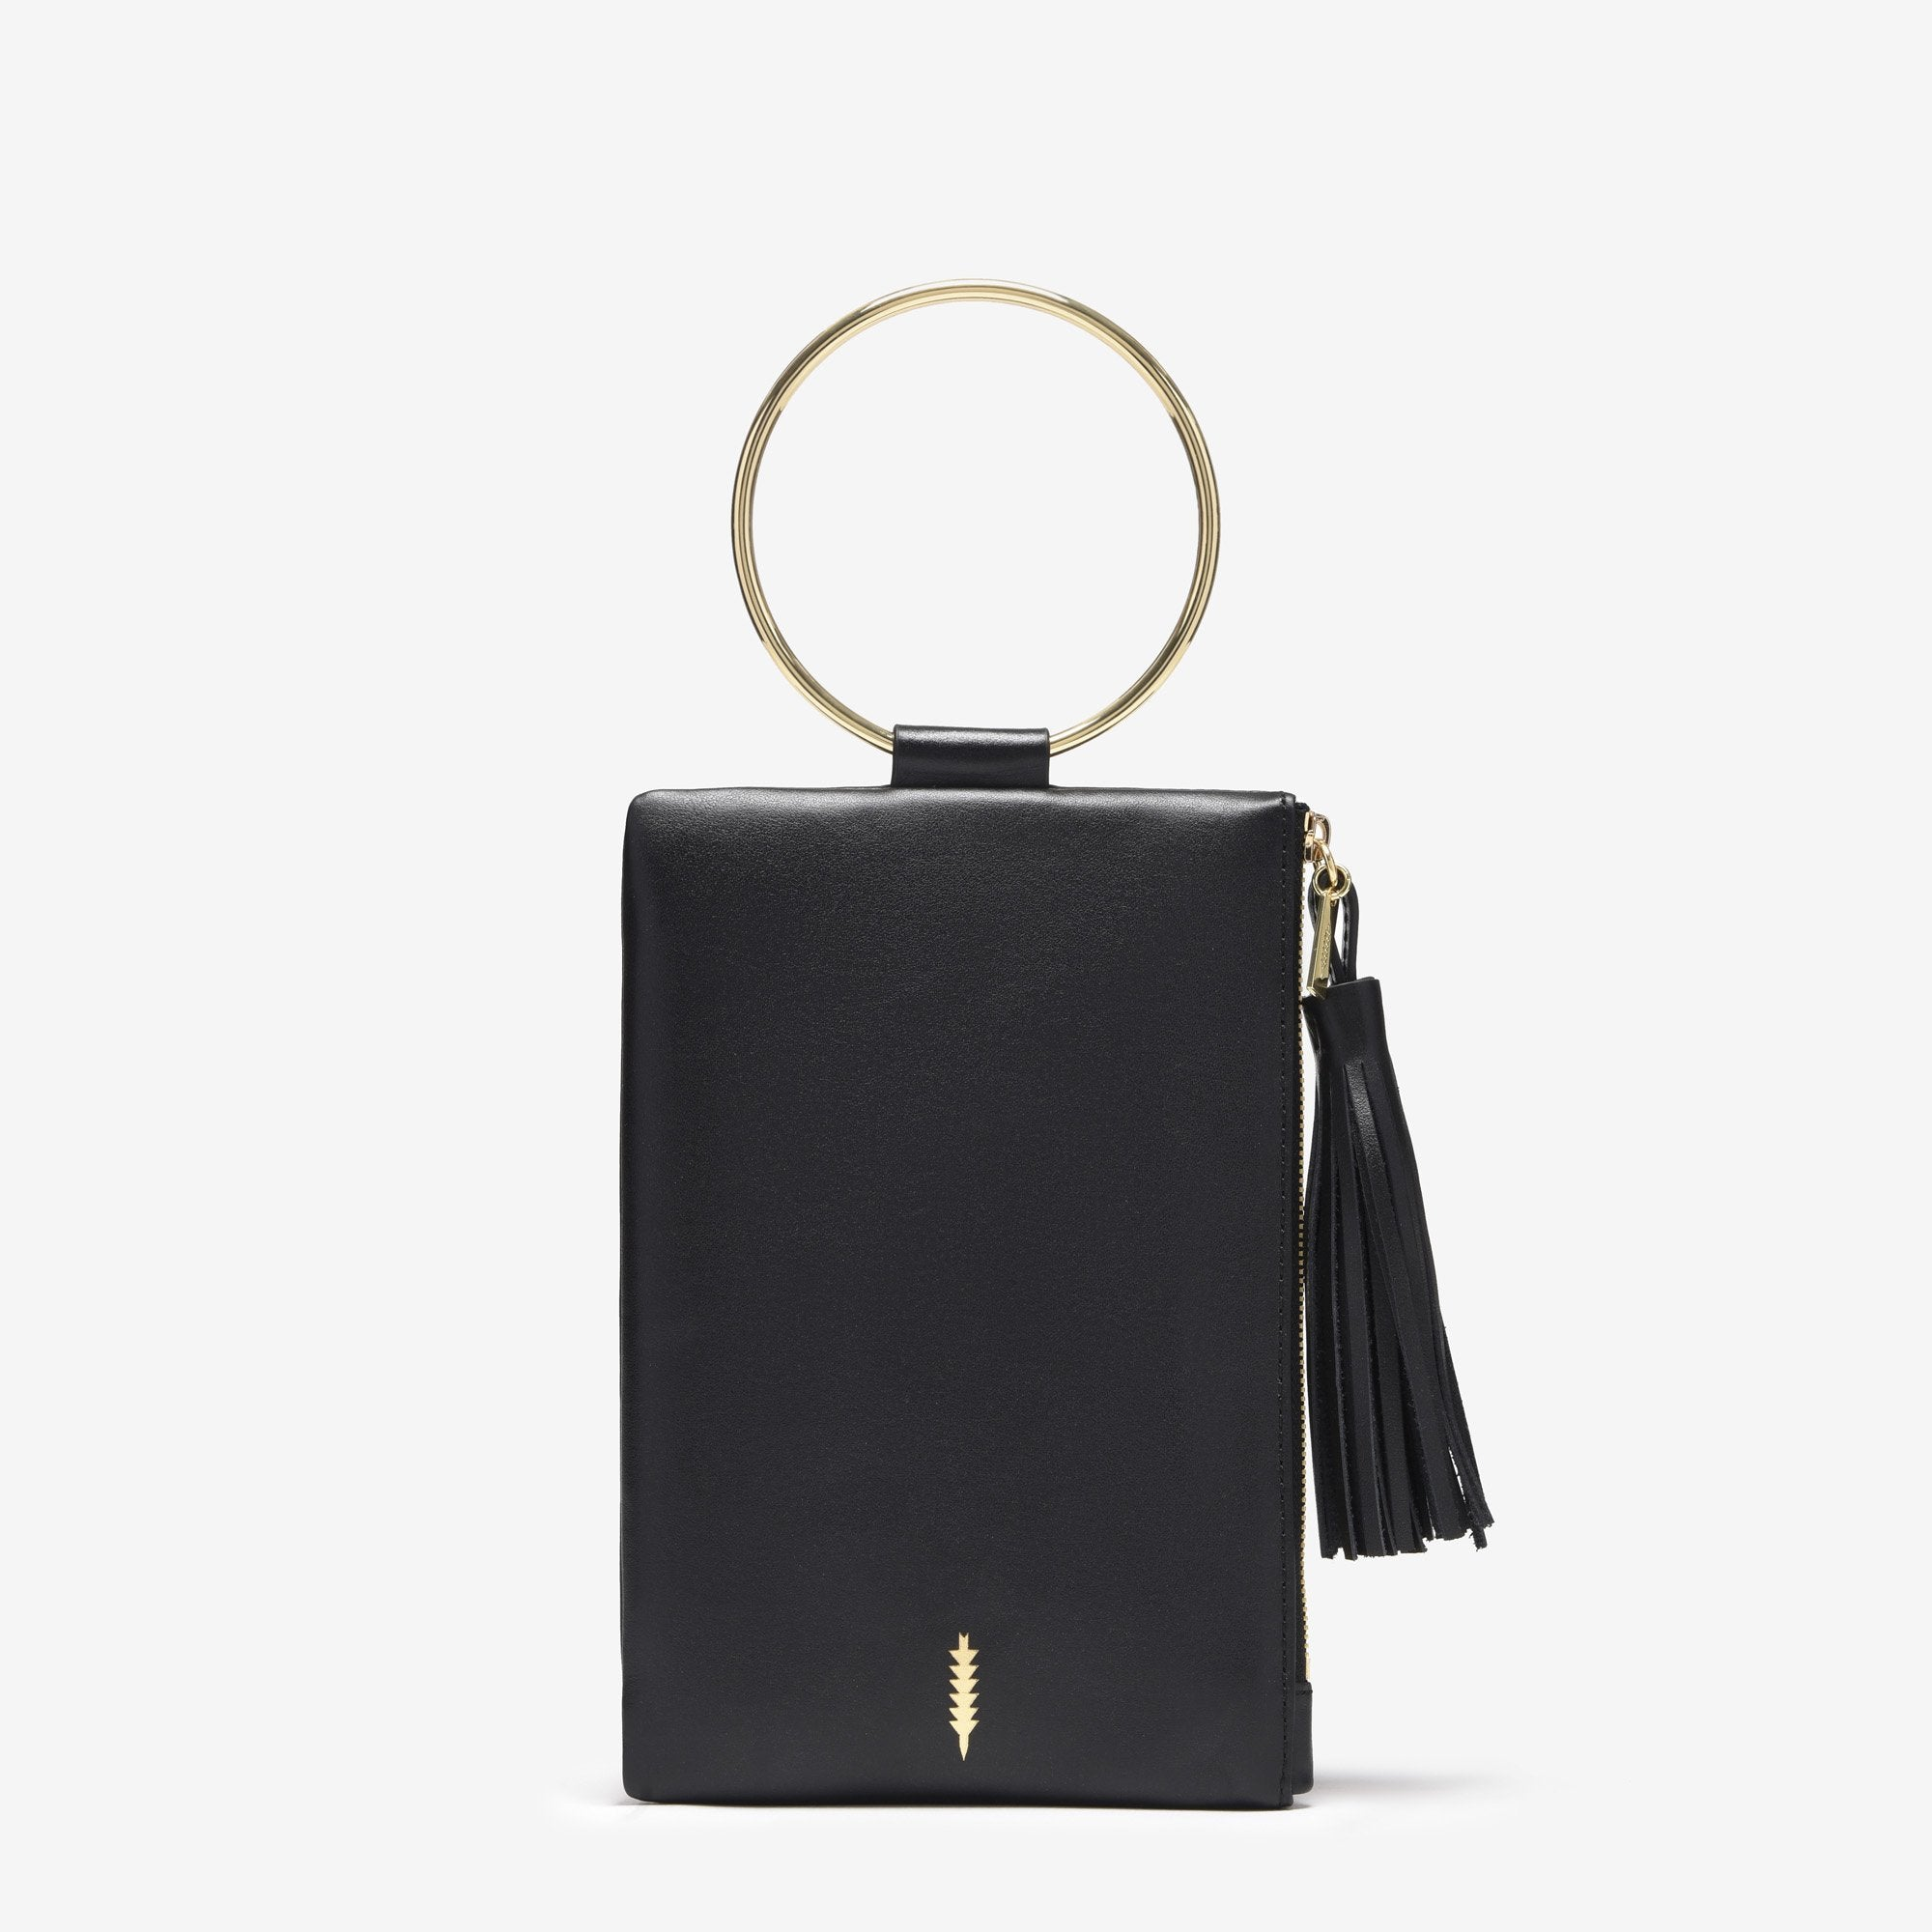 Nolita Clutch | Black/Gold - Susie O's Handbags